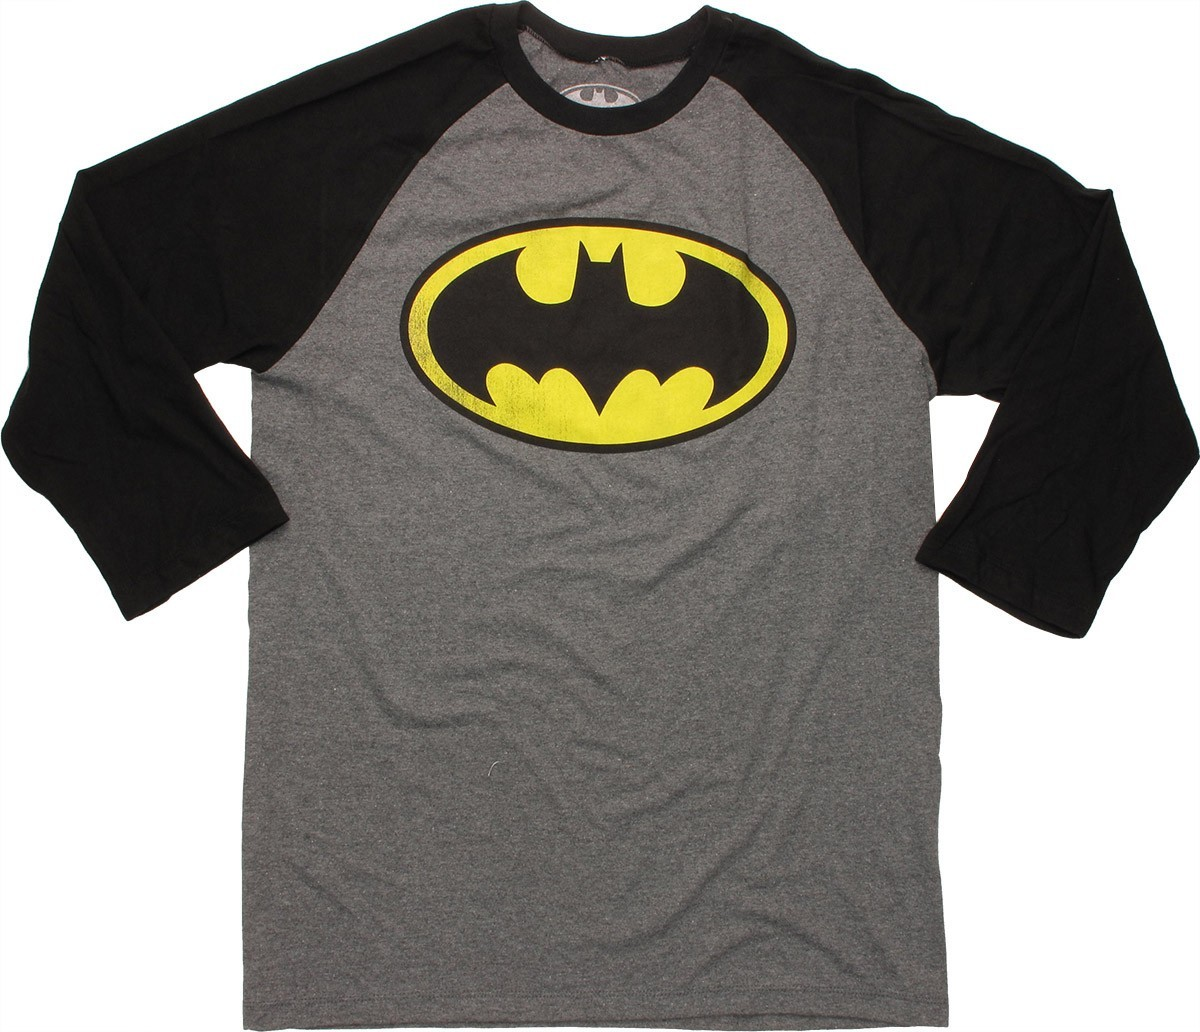 batman logo 3 4 raglan t shirt. Black Bedroom Furniture Sets. Home Design Ideas